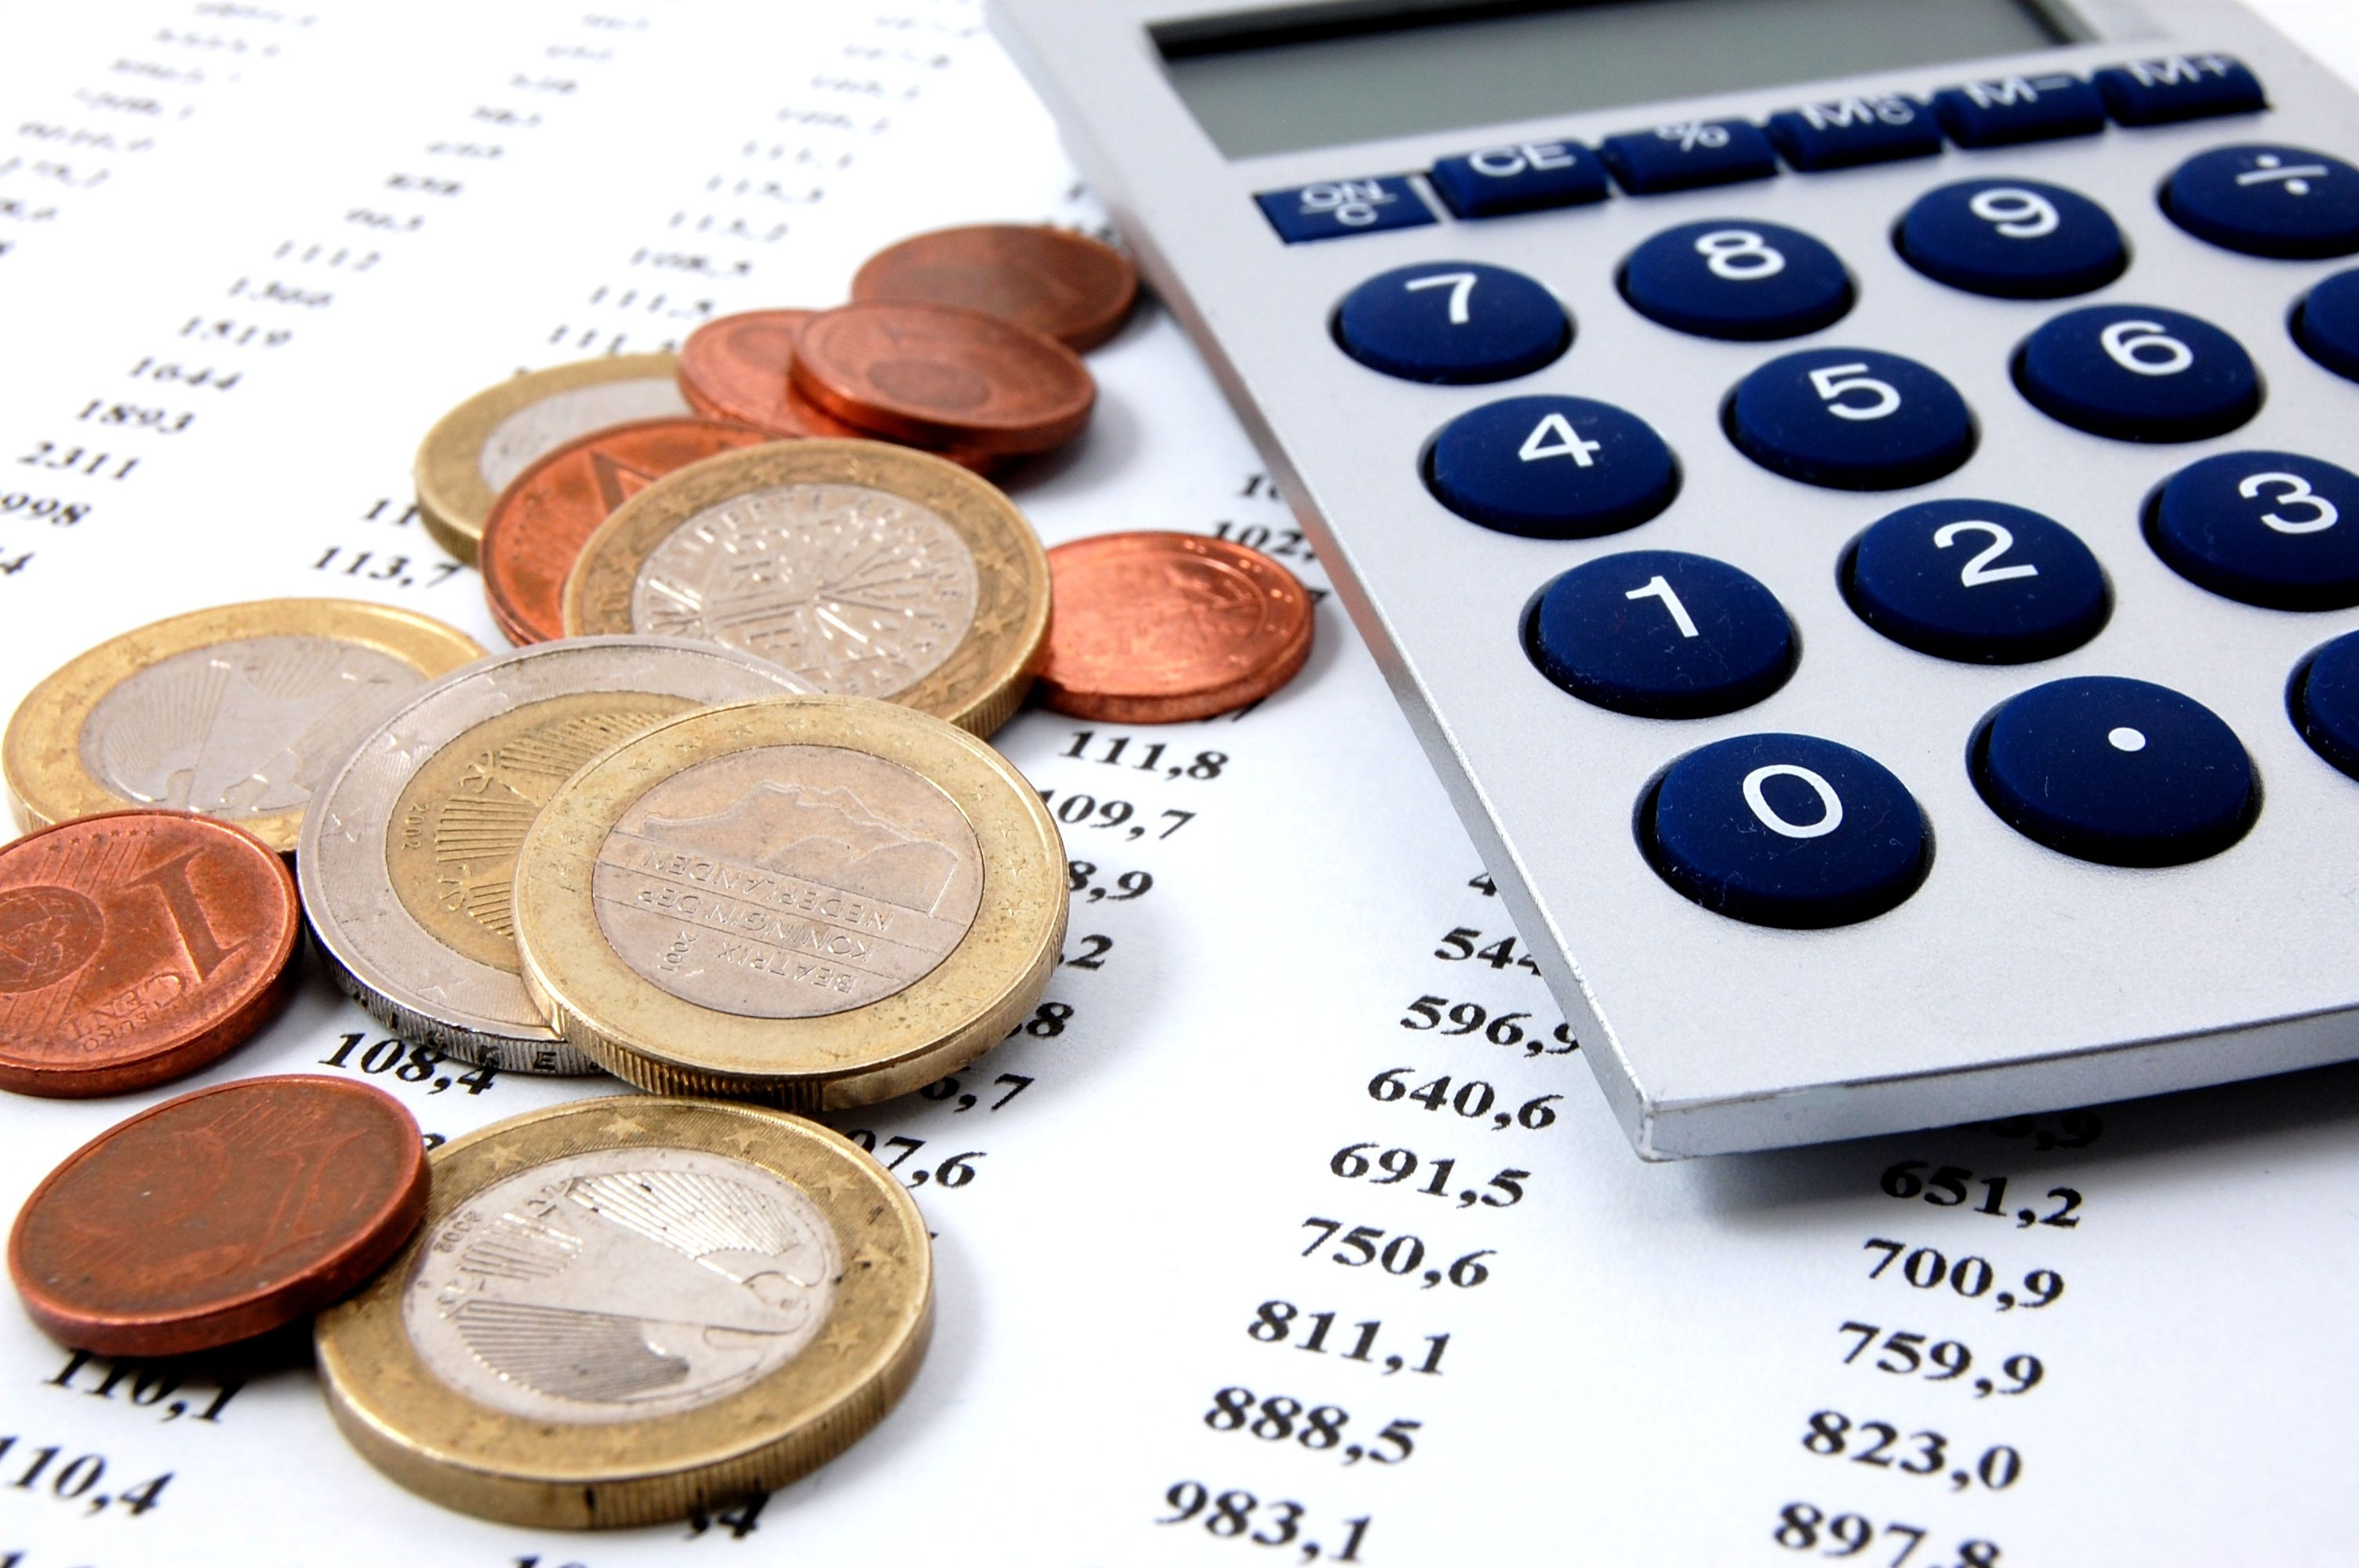 Report late payment data in annual accounts, says CBI